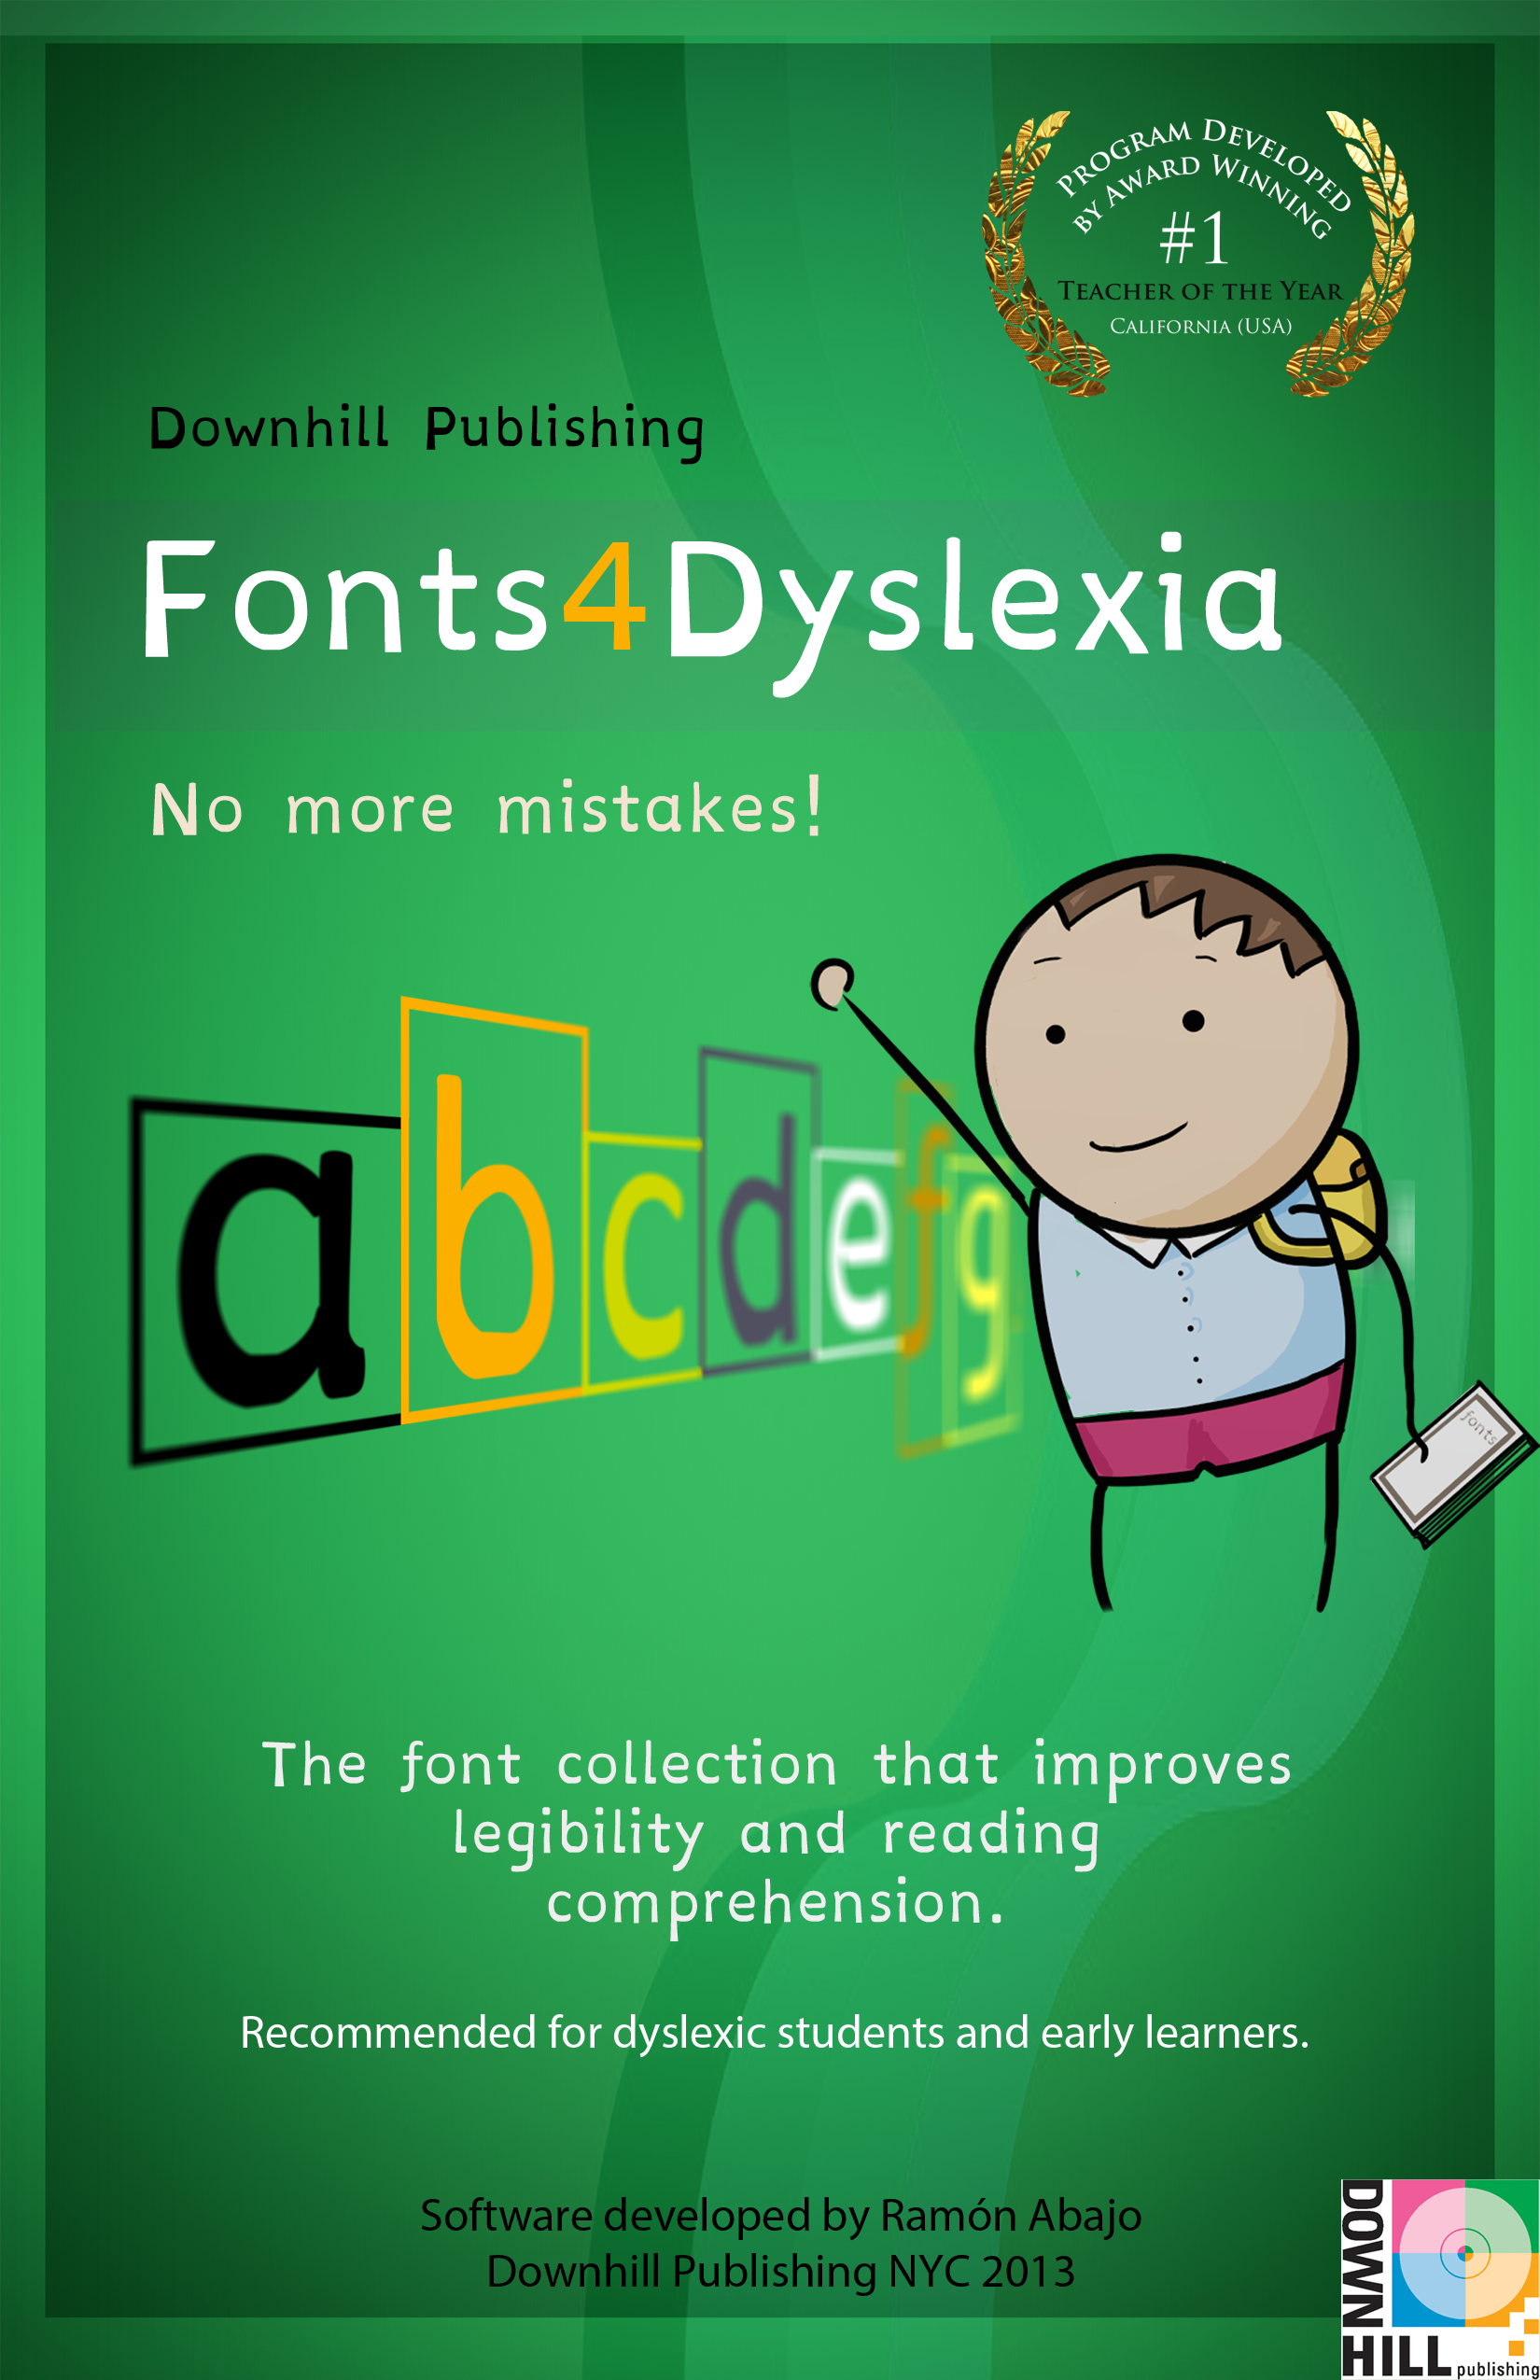 A New Collection Of Fonts Designed For Dyslexics And